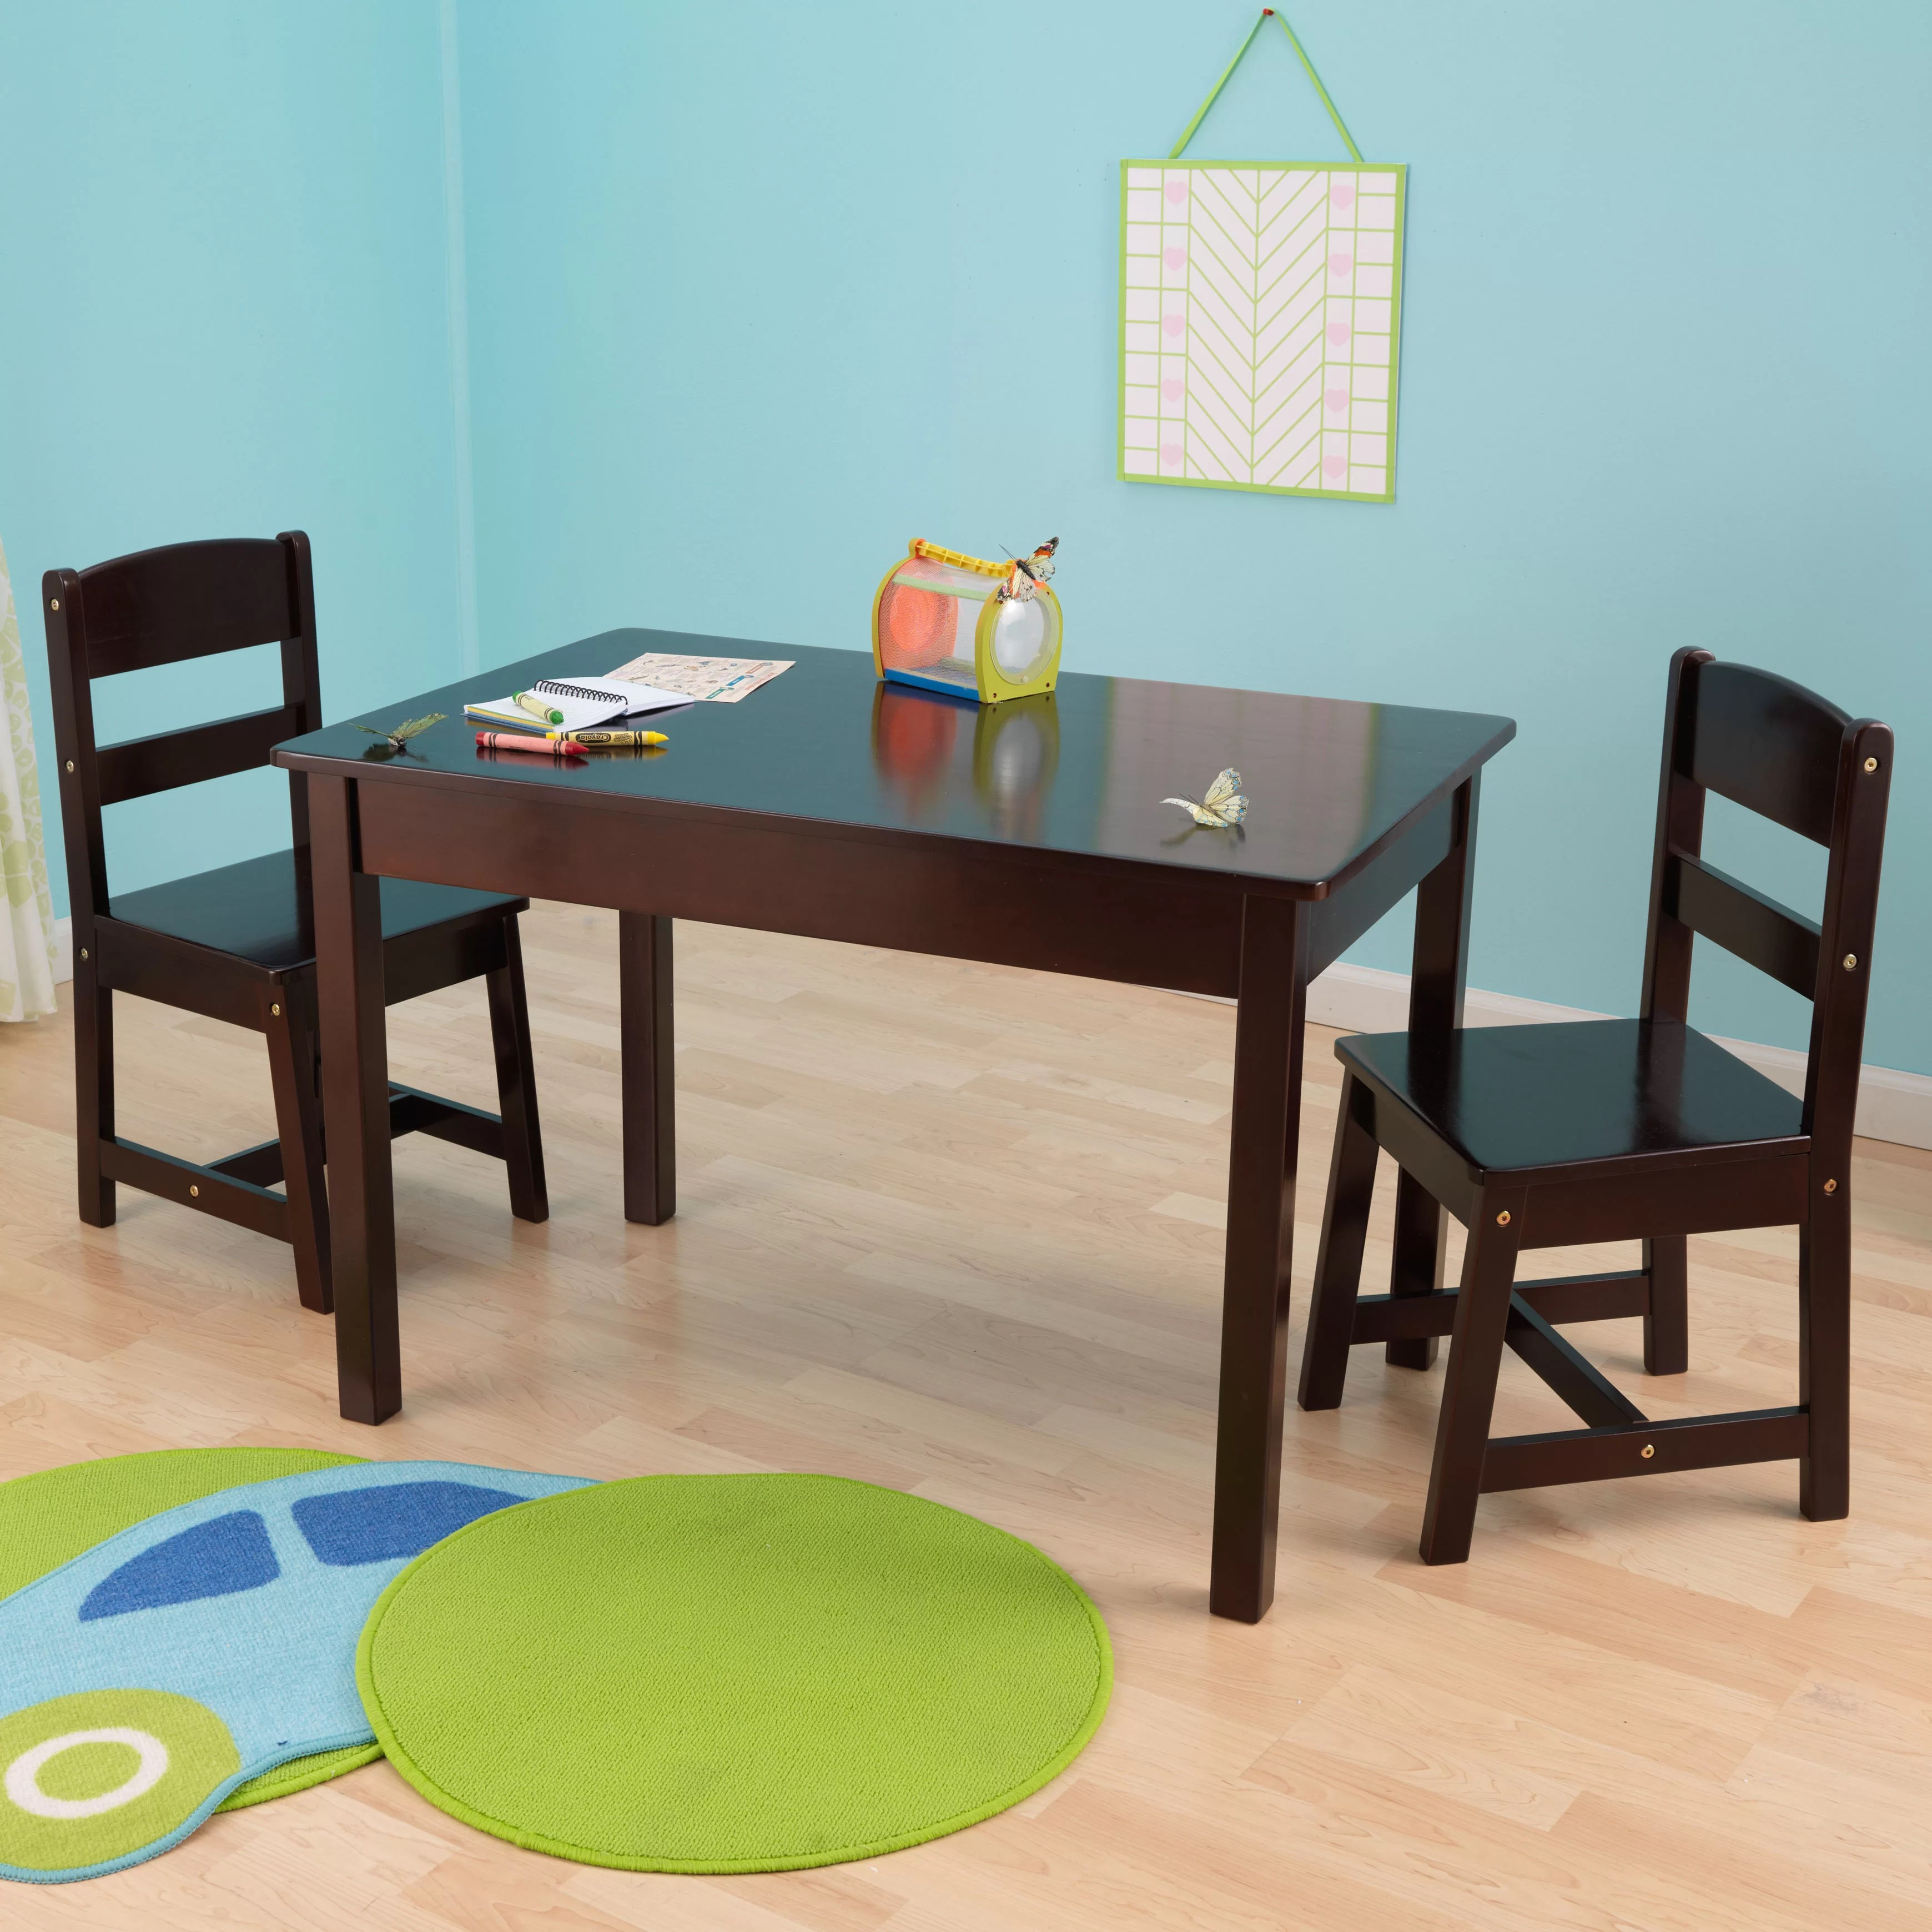 Kids Wood Table And Chairs Kids 3 Piece Wood Table Chair Set